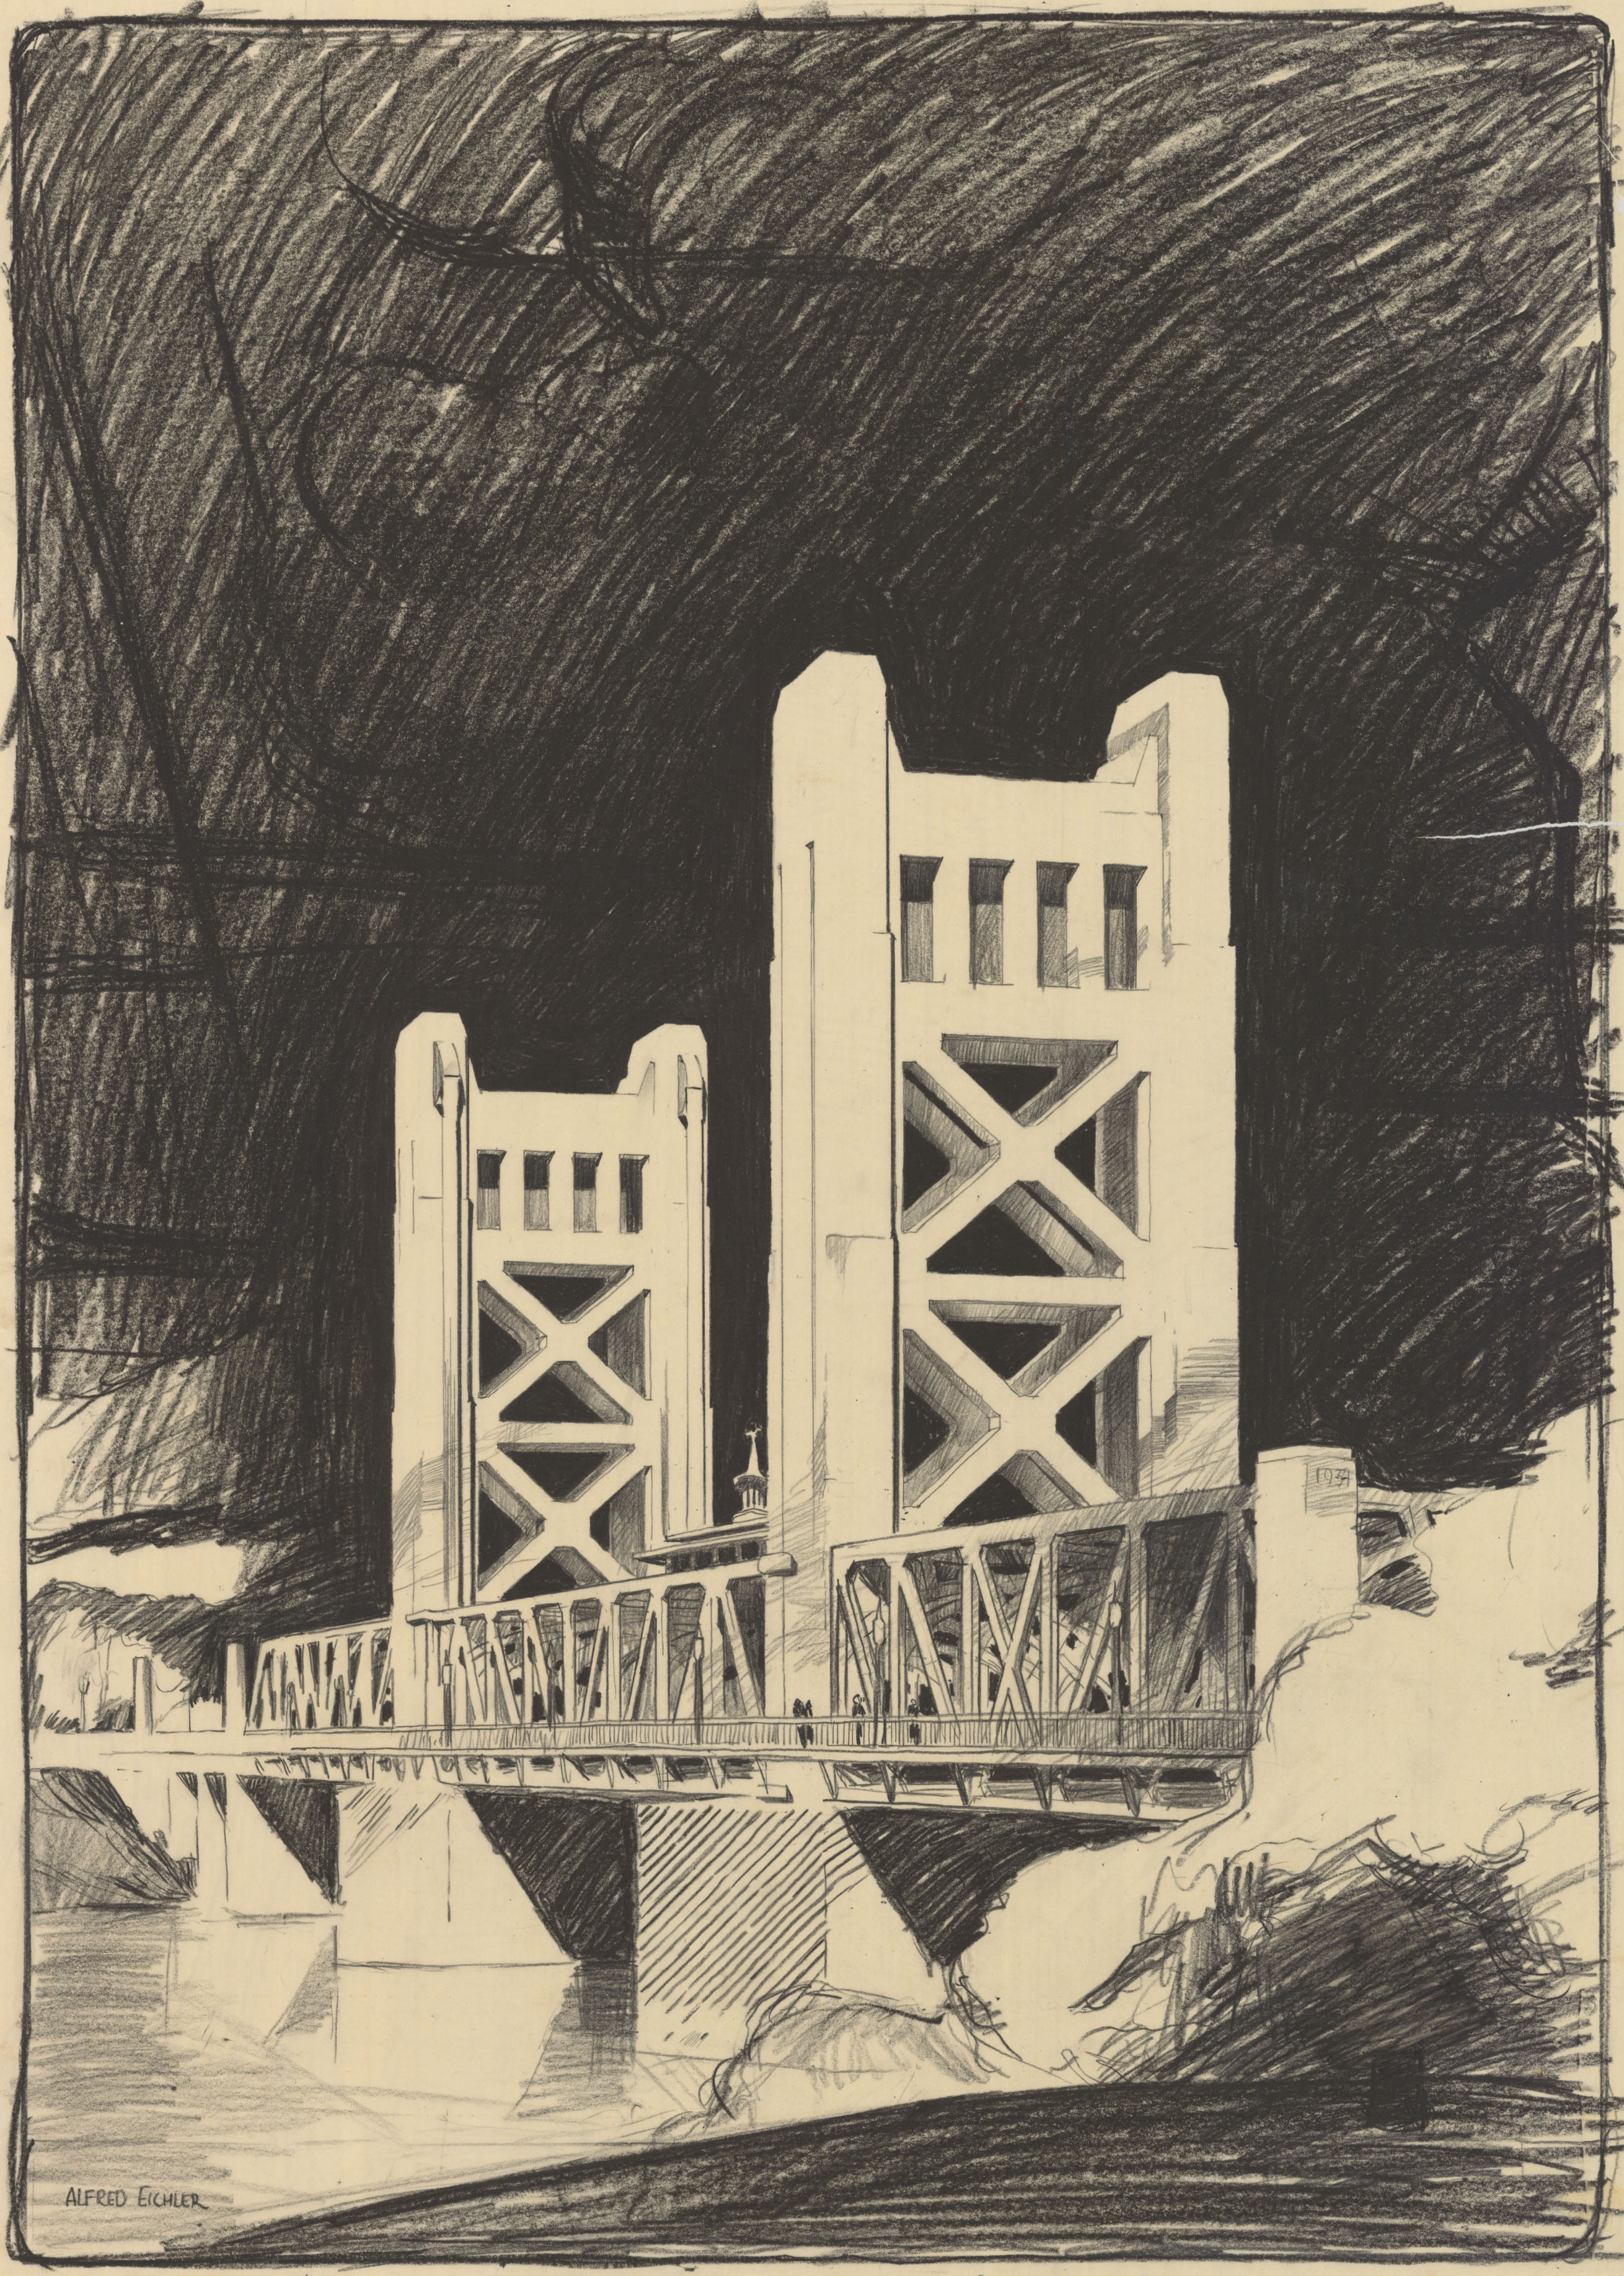 Image of Alfred Eichler's concept drawing of the tower bridge.